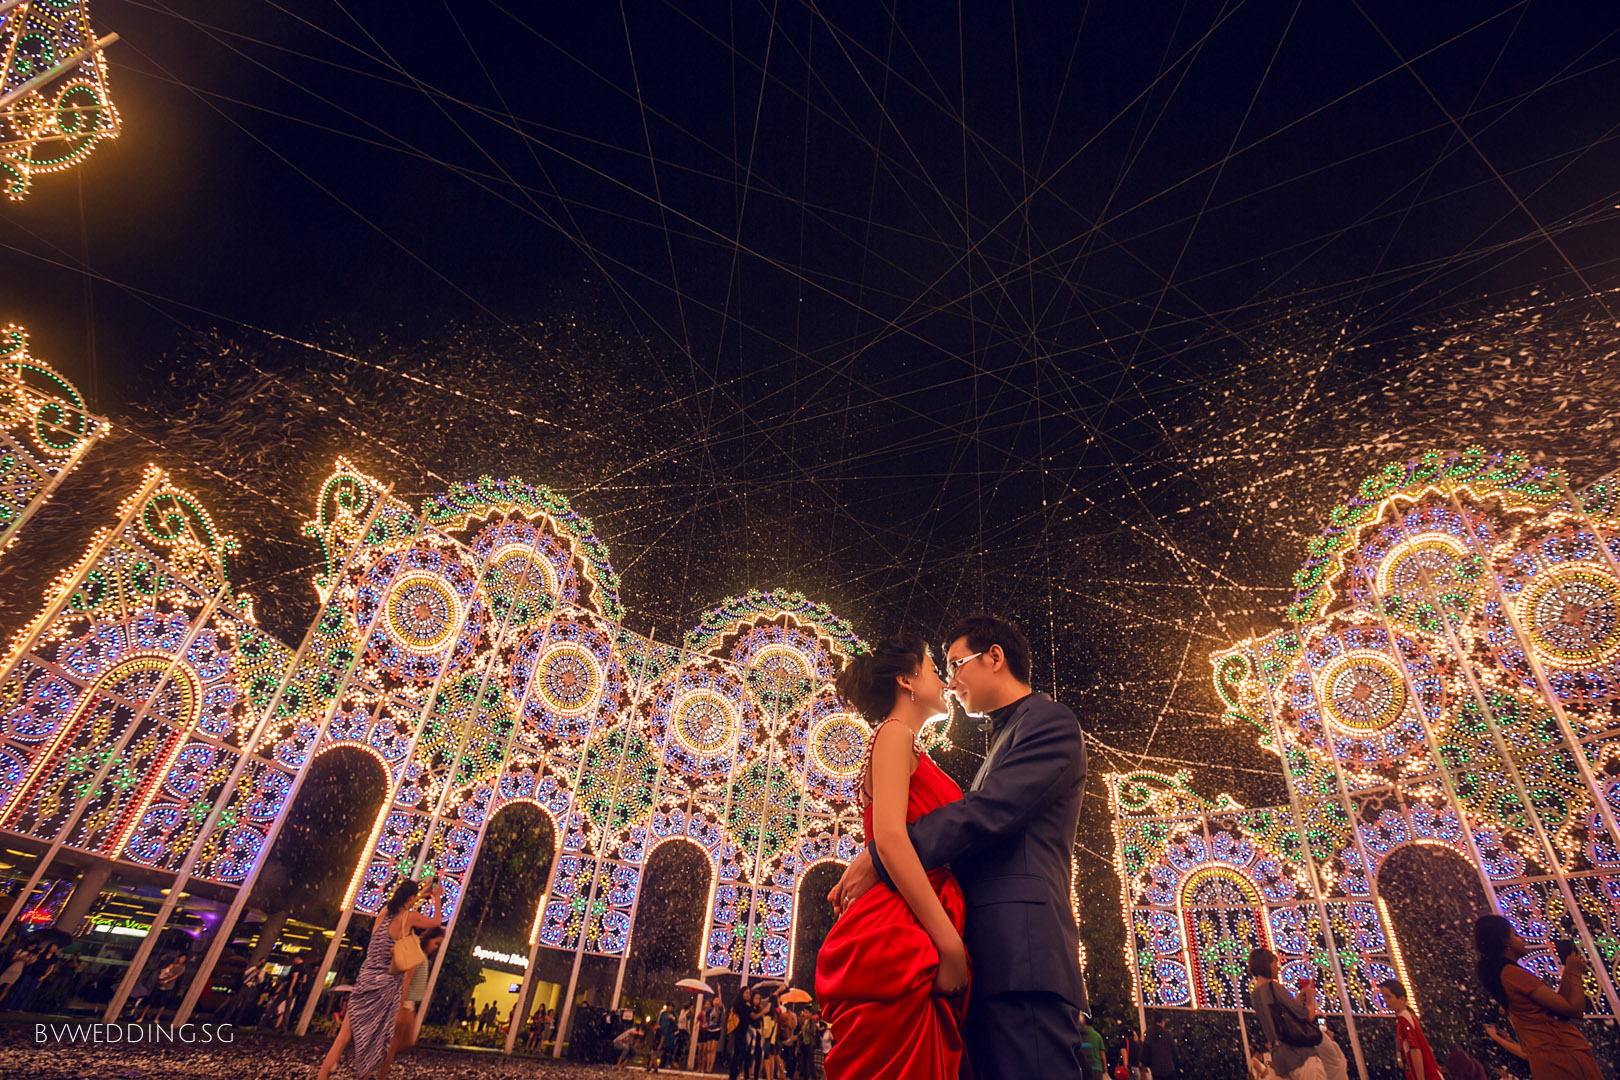 pre-wedding Photoshoot at Gardens By the Bay